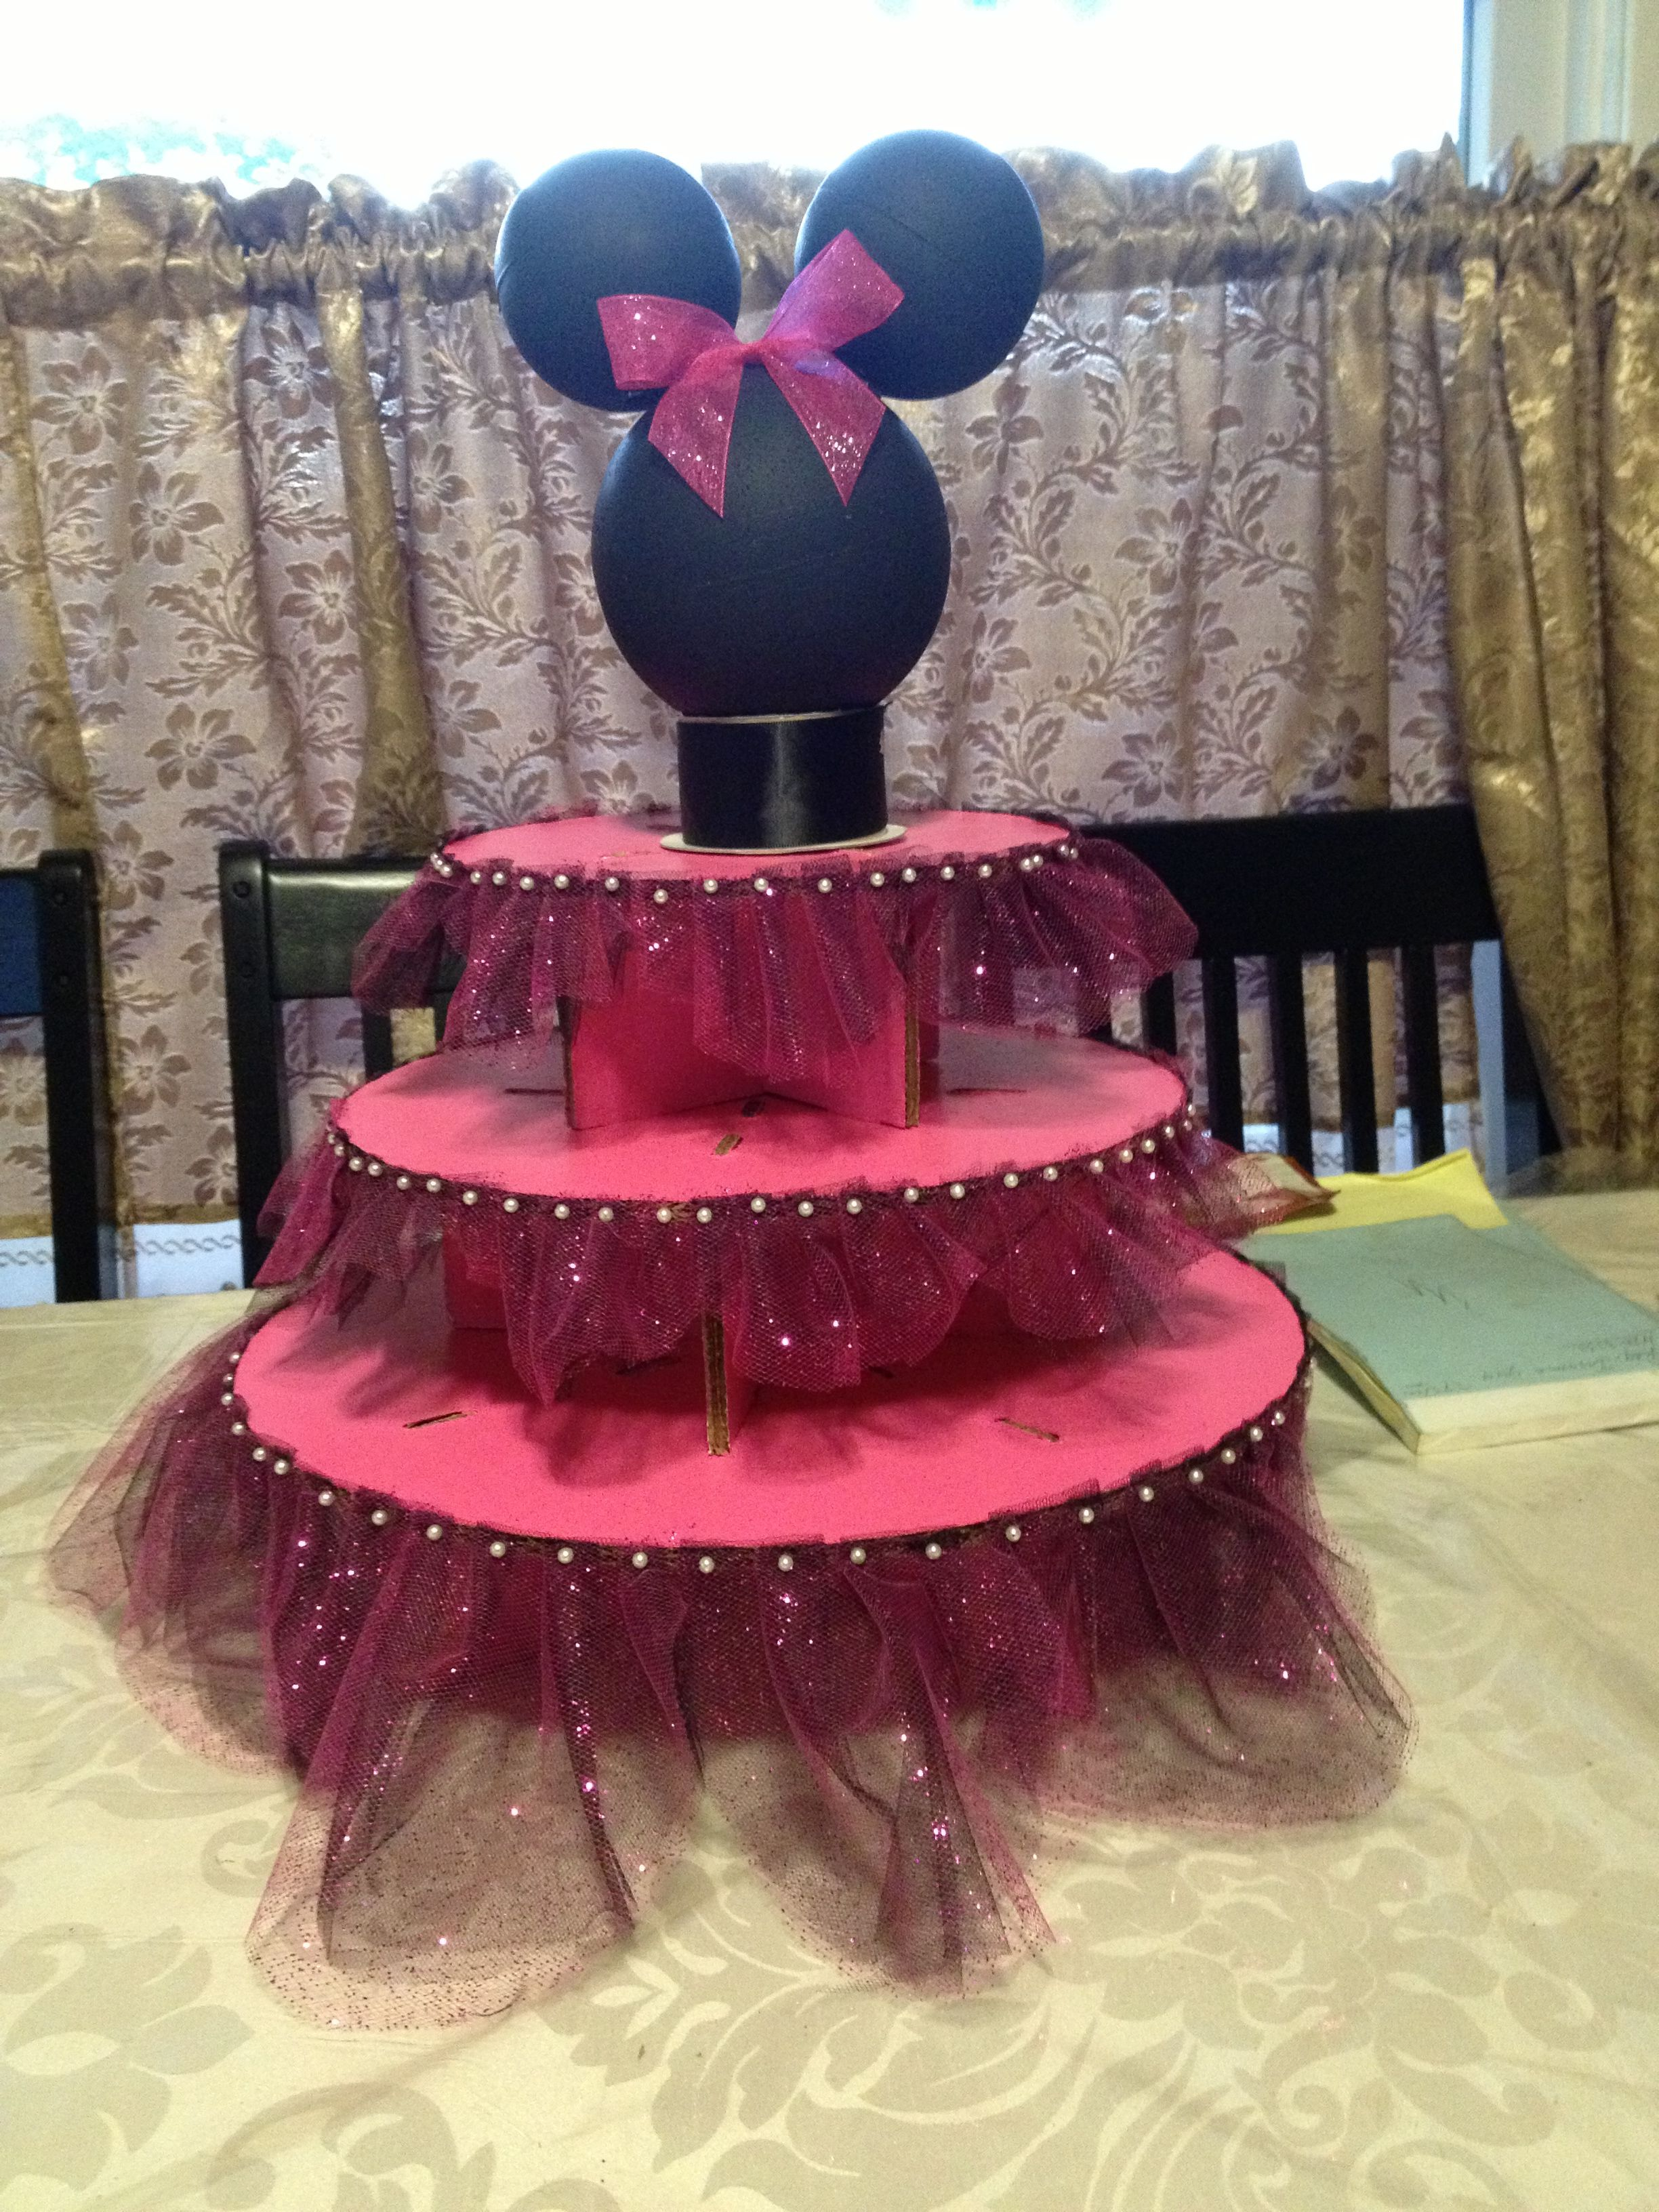 Minnie Mouse cake stand DIY PARTY DECORATIONS Pinterest